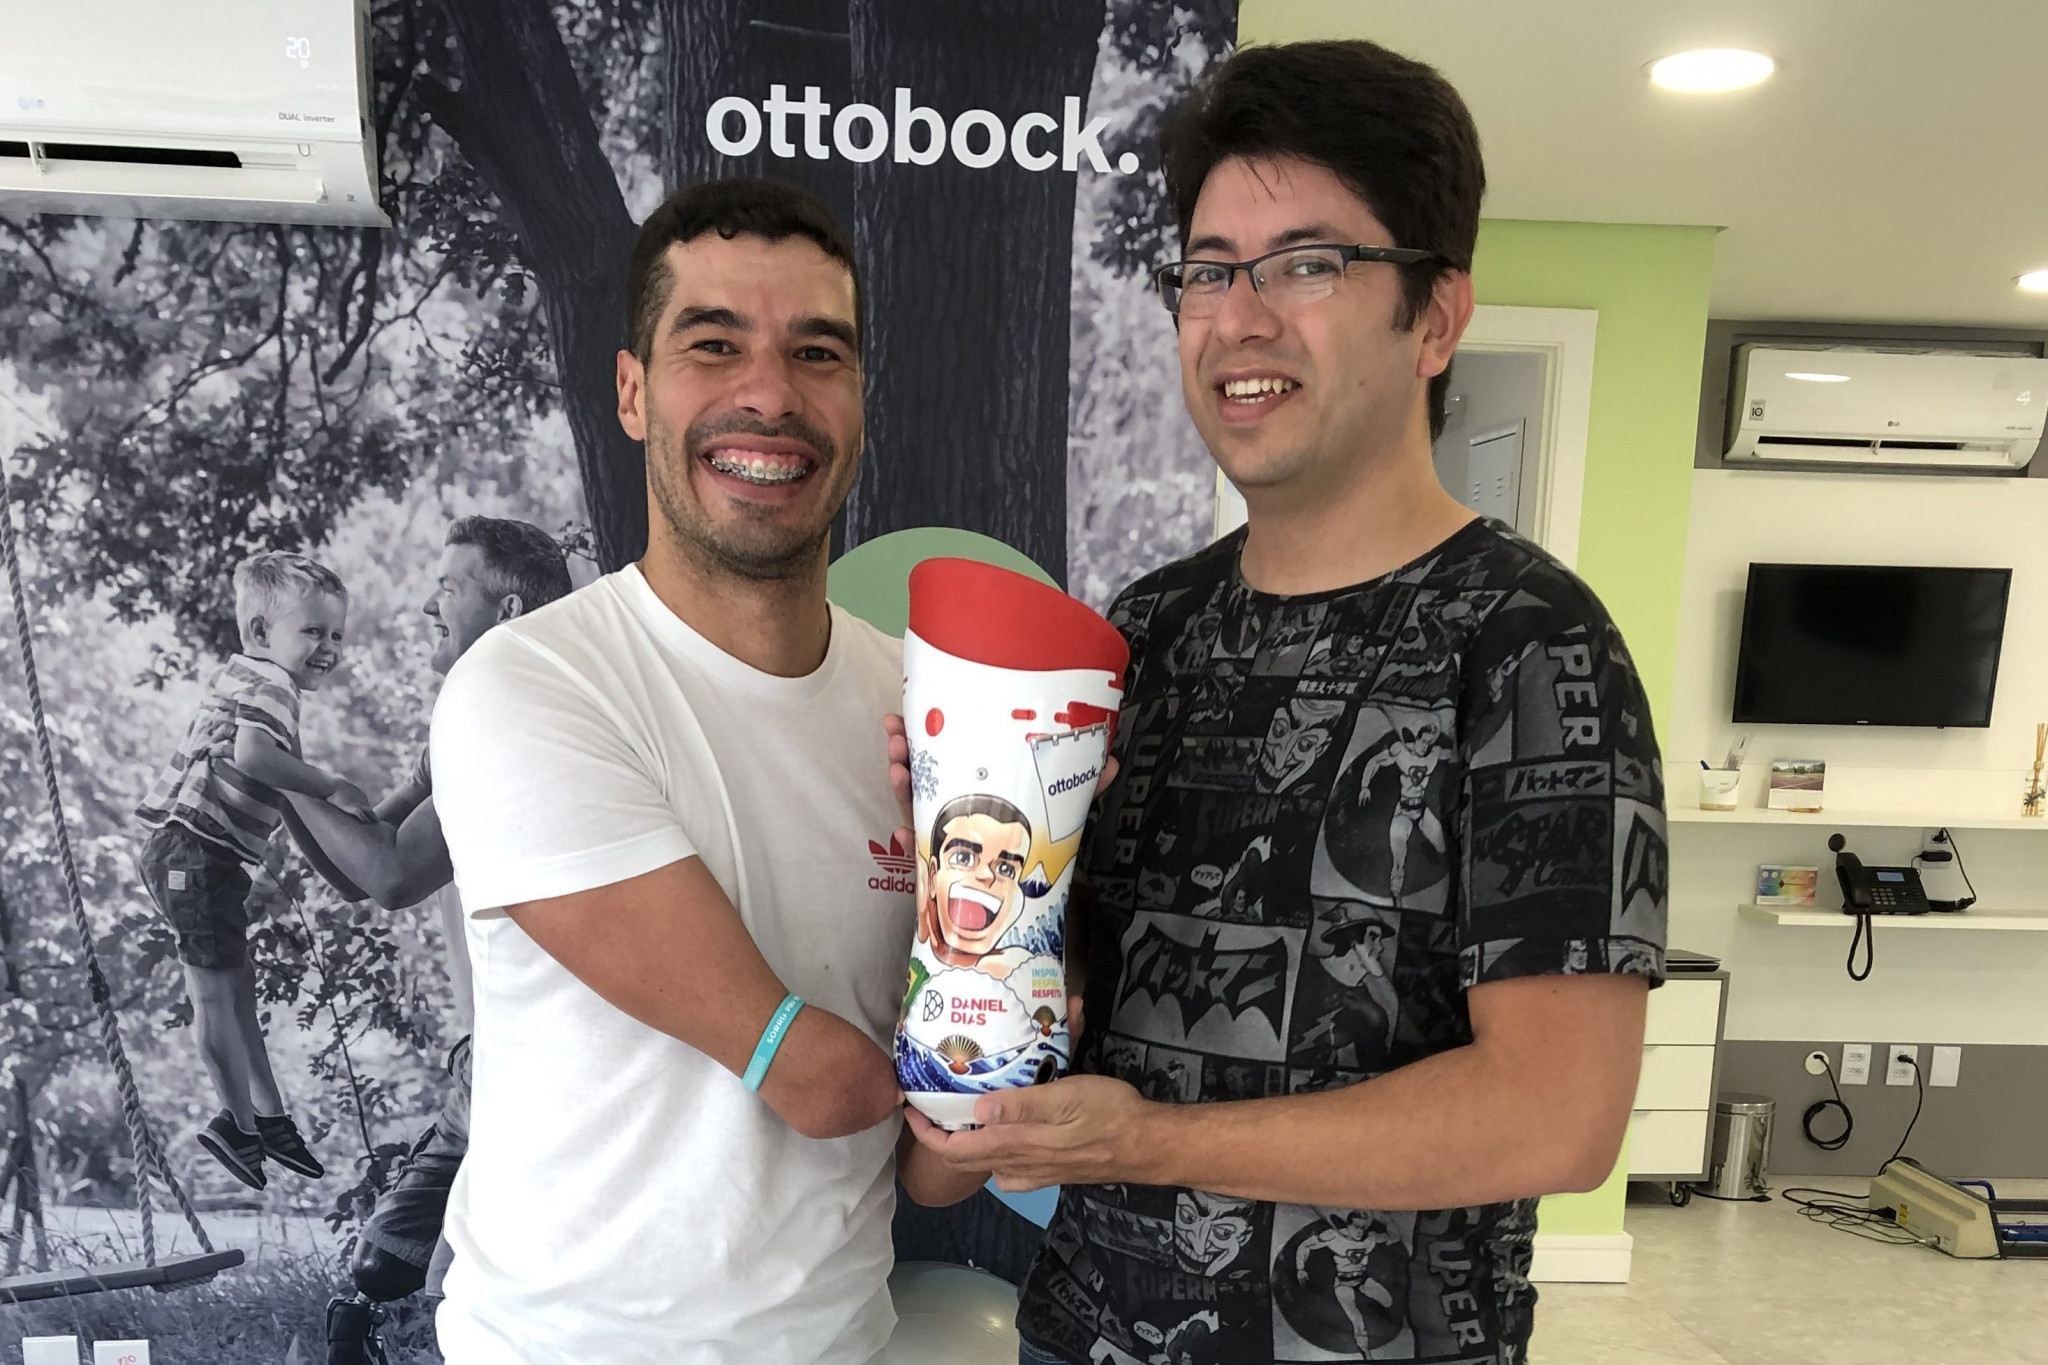 Brazil's multiple Paralympic swimming champion Dias gets manga-style prosthetic for Tokyo 2020